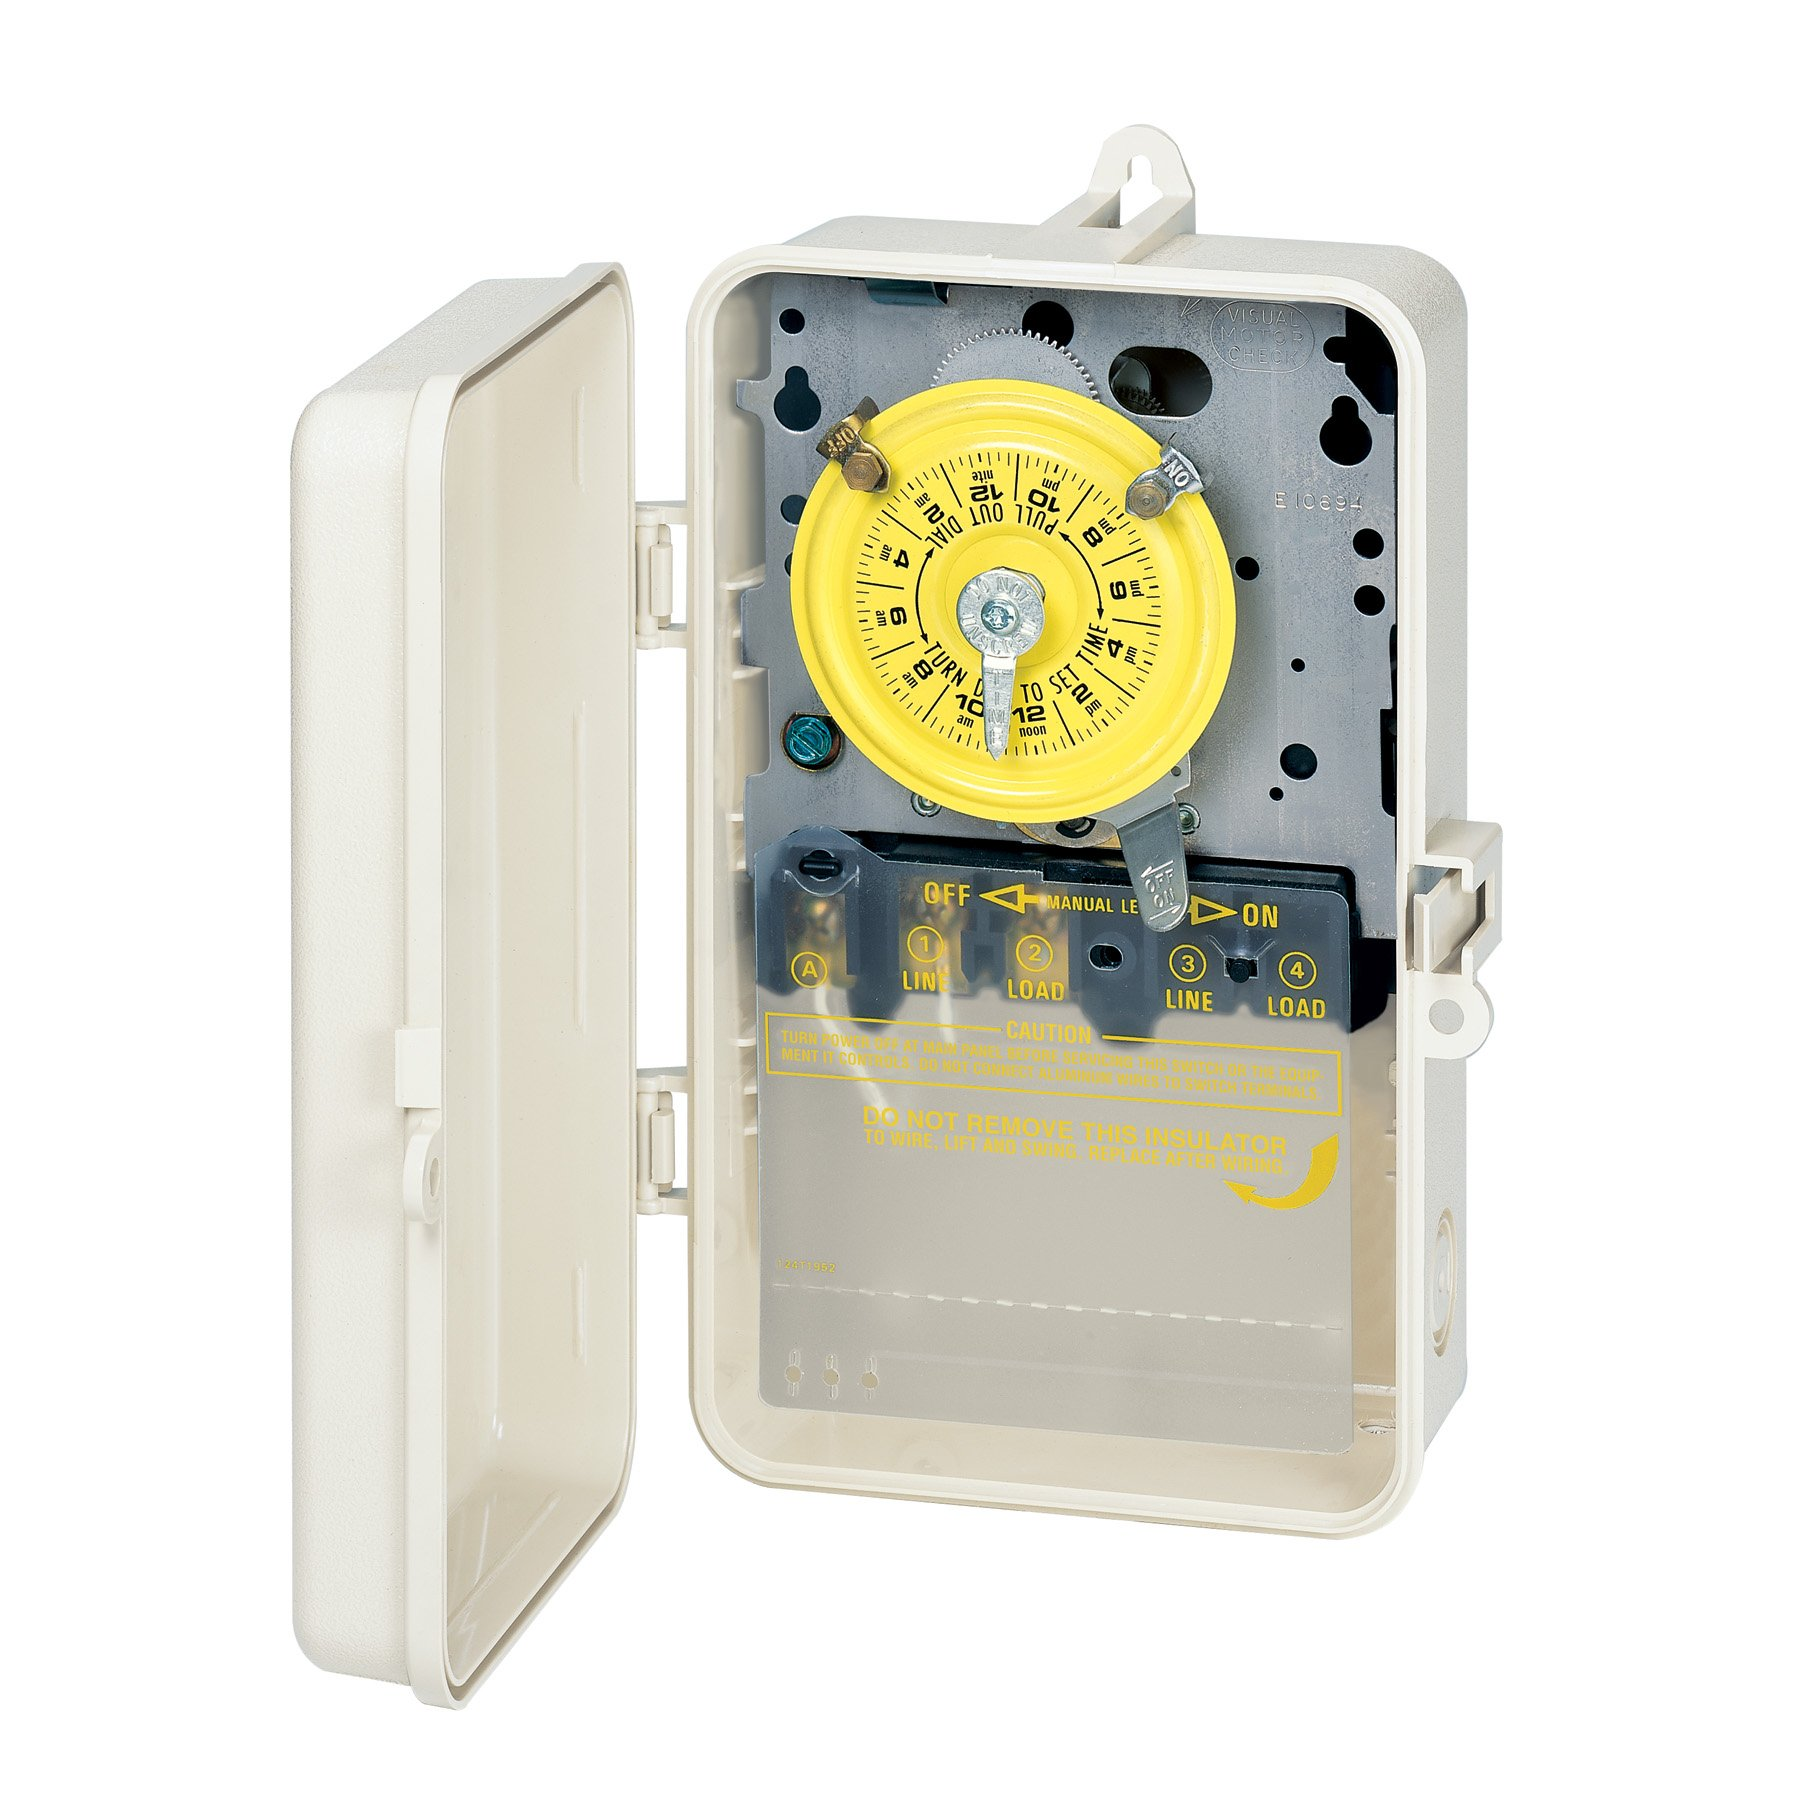 Intermatic T101P3 Time Switch In Plastic Enclosure by Intermatic (Image #1)